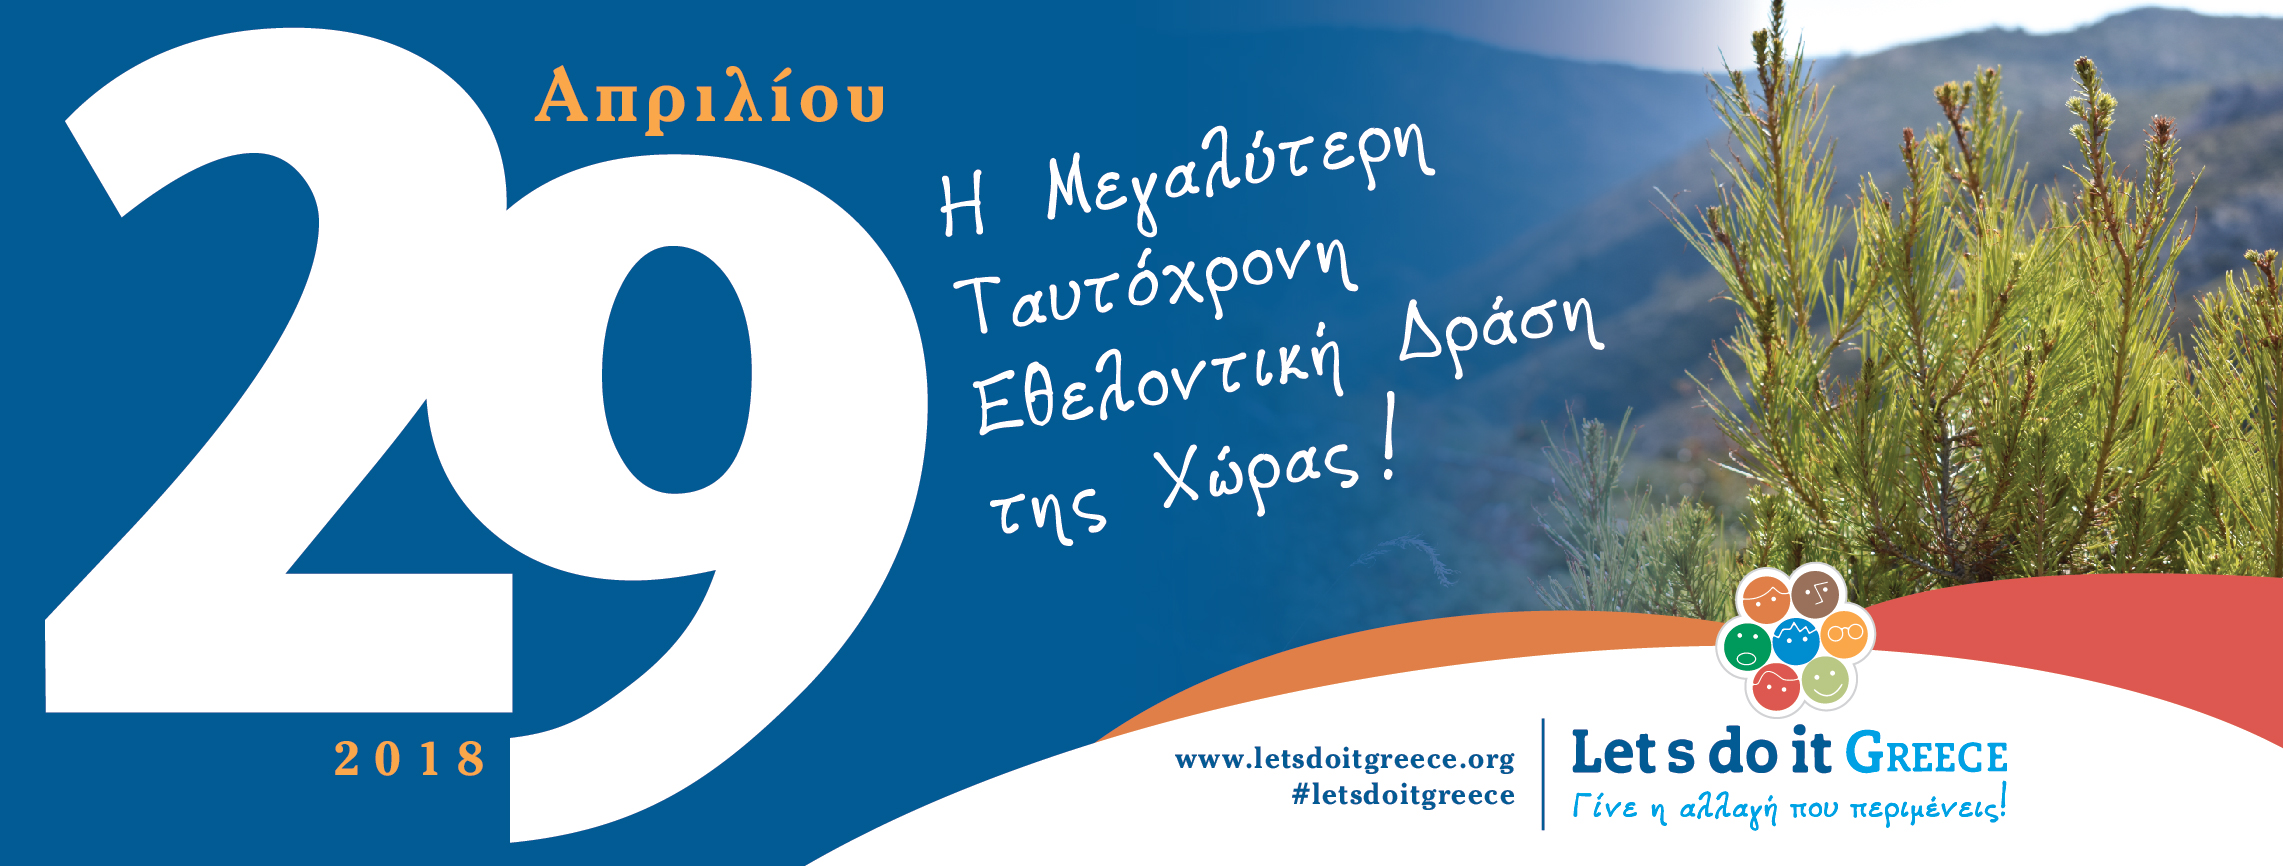 %ce%a6%cf%8d%ce%b3%ce%b1%ce%bc%ce%b5 %ce%b3%ce%b9%ce%b1 let s do it greece 2018